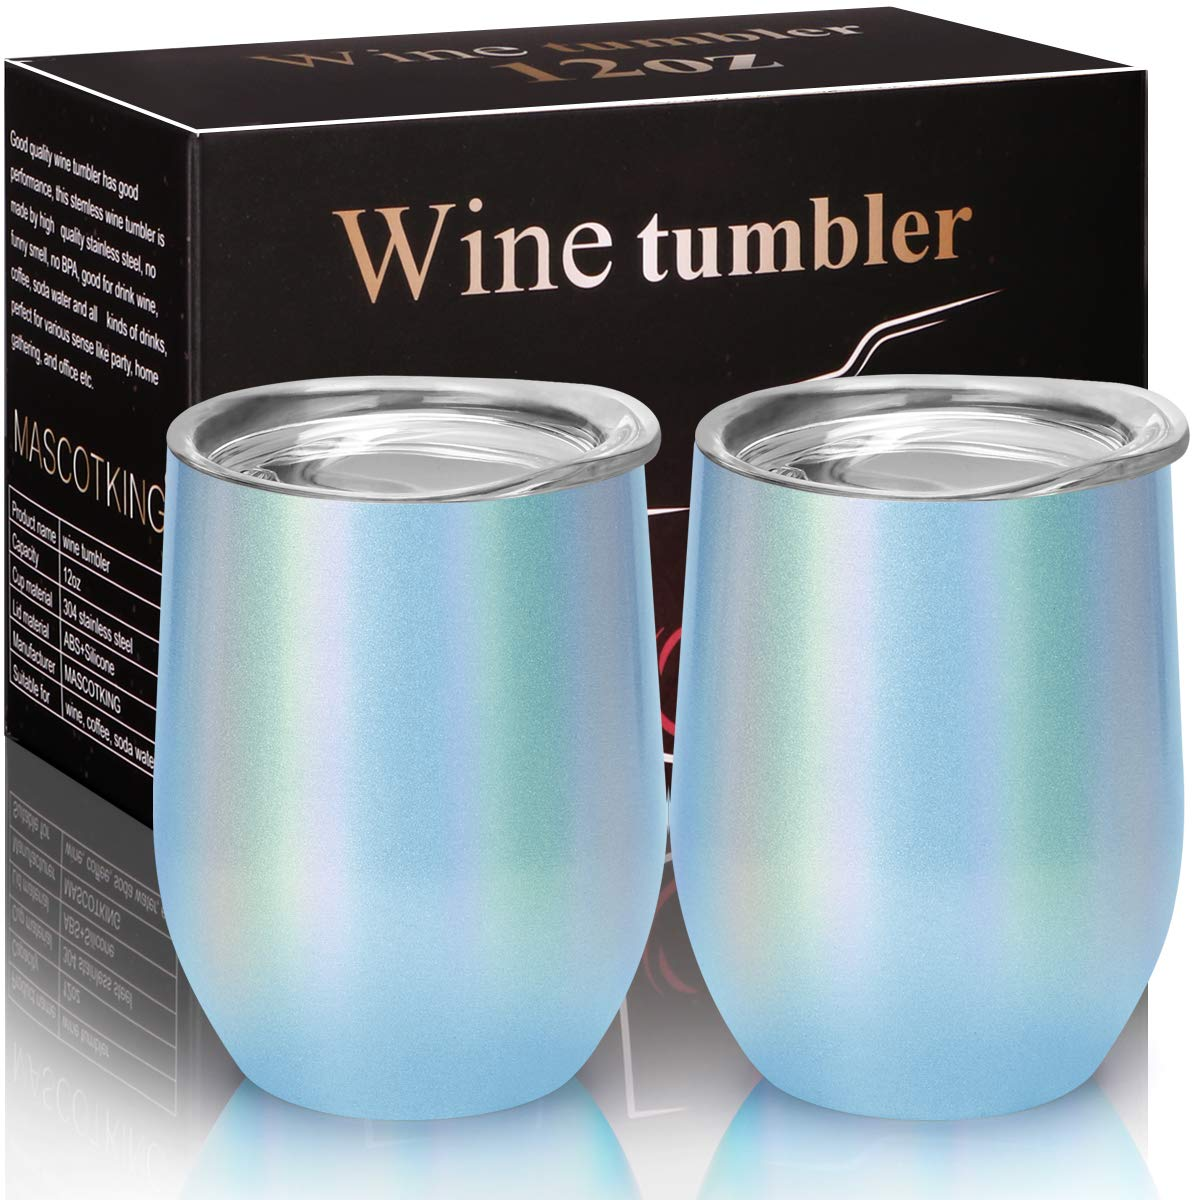 MASCOTKING Wine Glasses Tumbler - 12 oz 2 Pack - Double Wall Vacuum Insulated Cup with Lids for Keeping Wine, Coffee, Drinks - Beverage Warm in Winter-Perfect Mother's Day Gifts